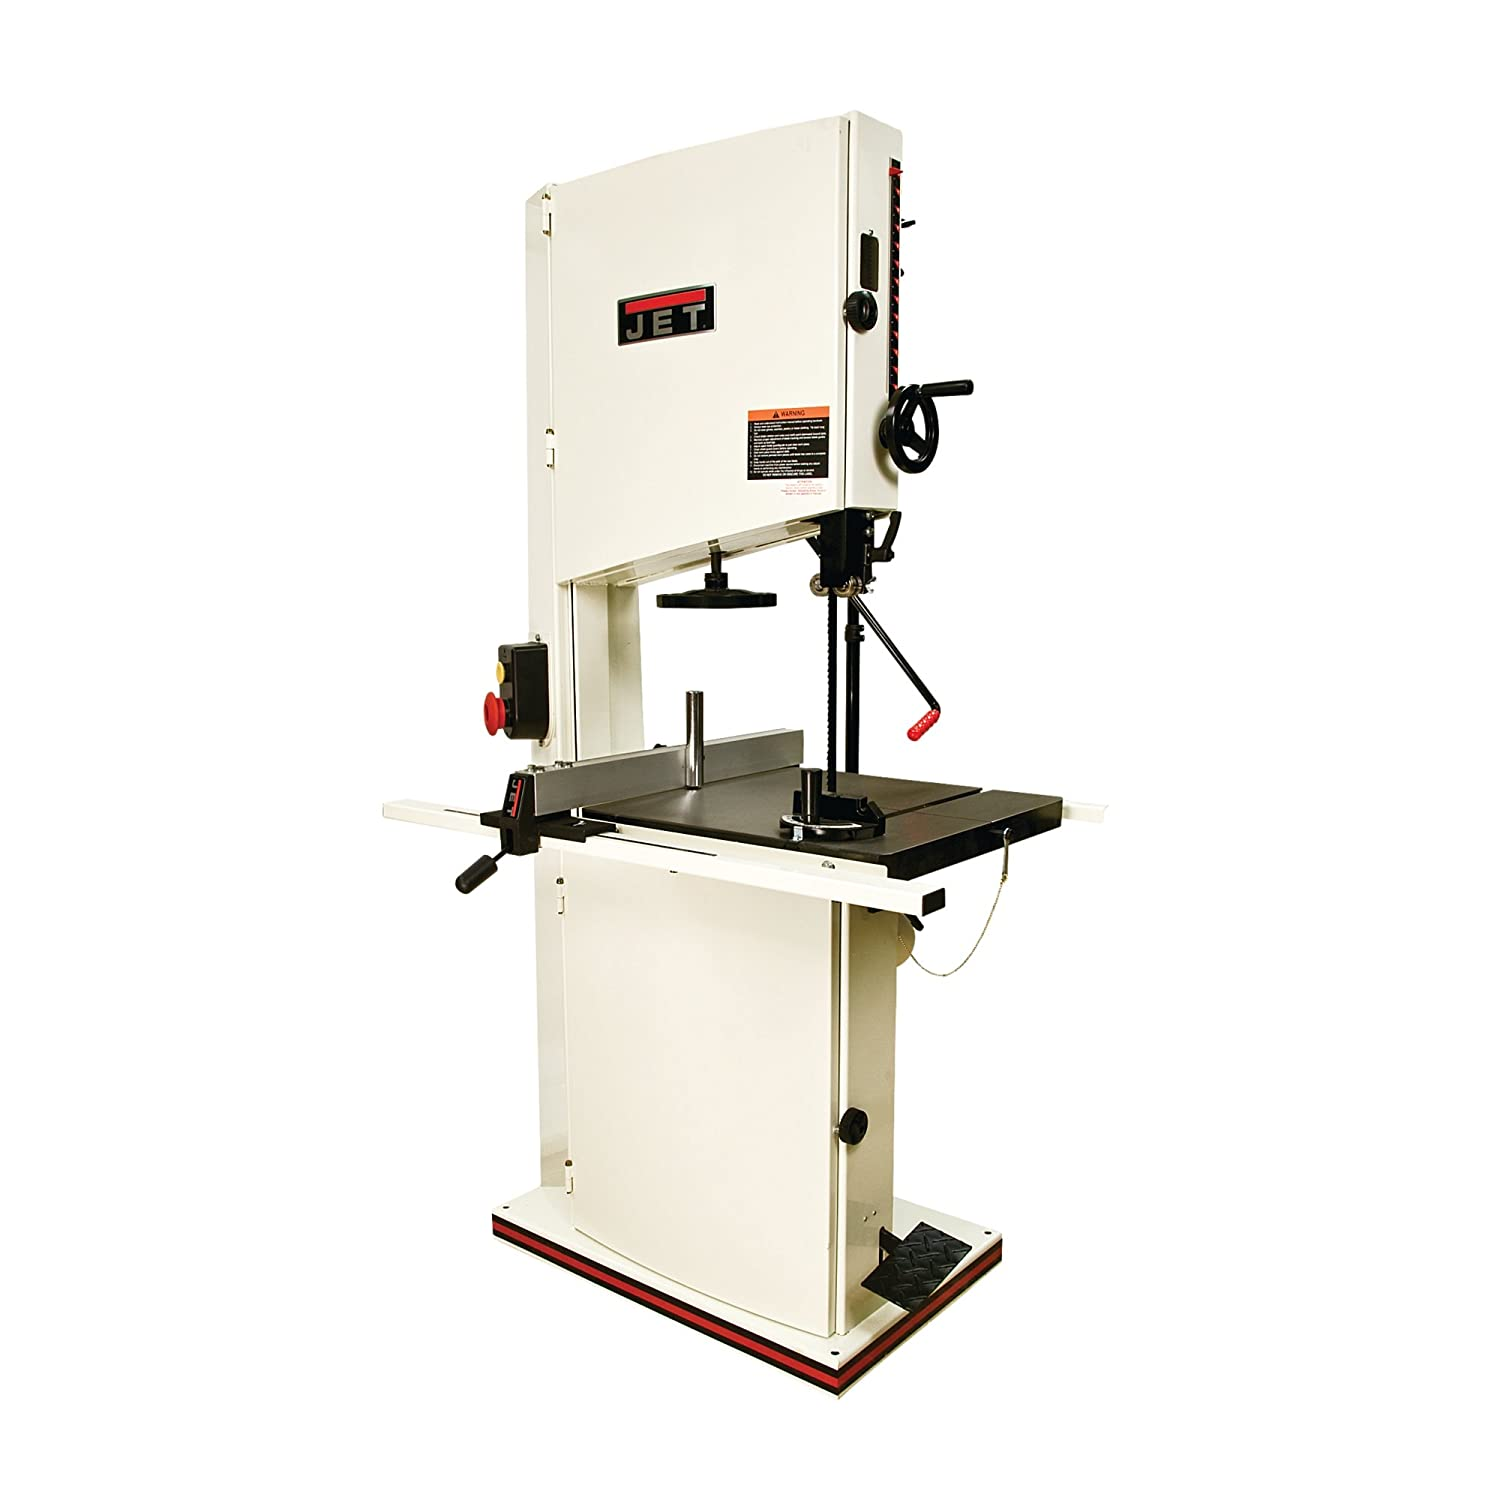 jet bandsaw. jet jwbs-20qt-3 20-inch 3hp 1ph 230-volt wood band saw with quick tensioning lever - power saws amazon.com jet bandsaw